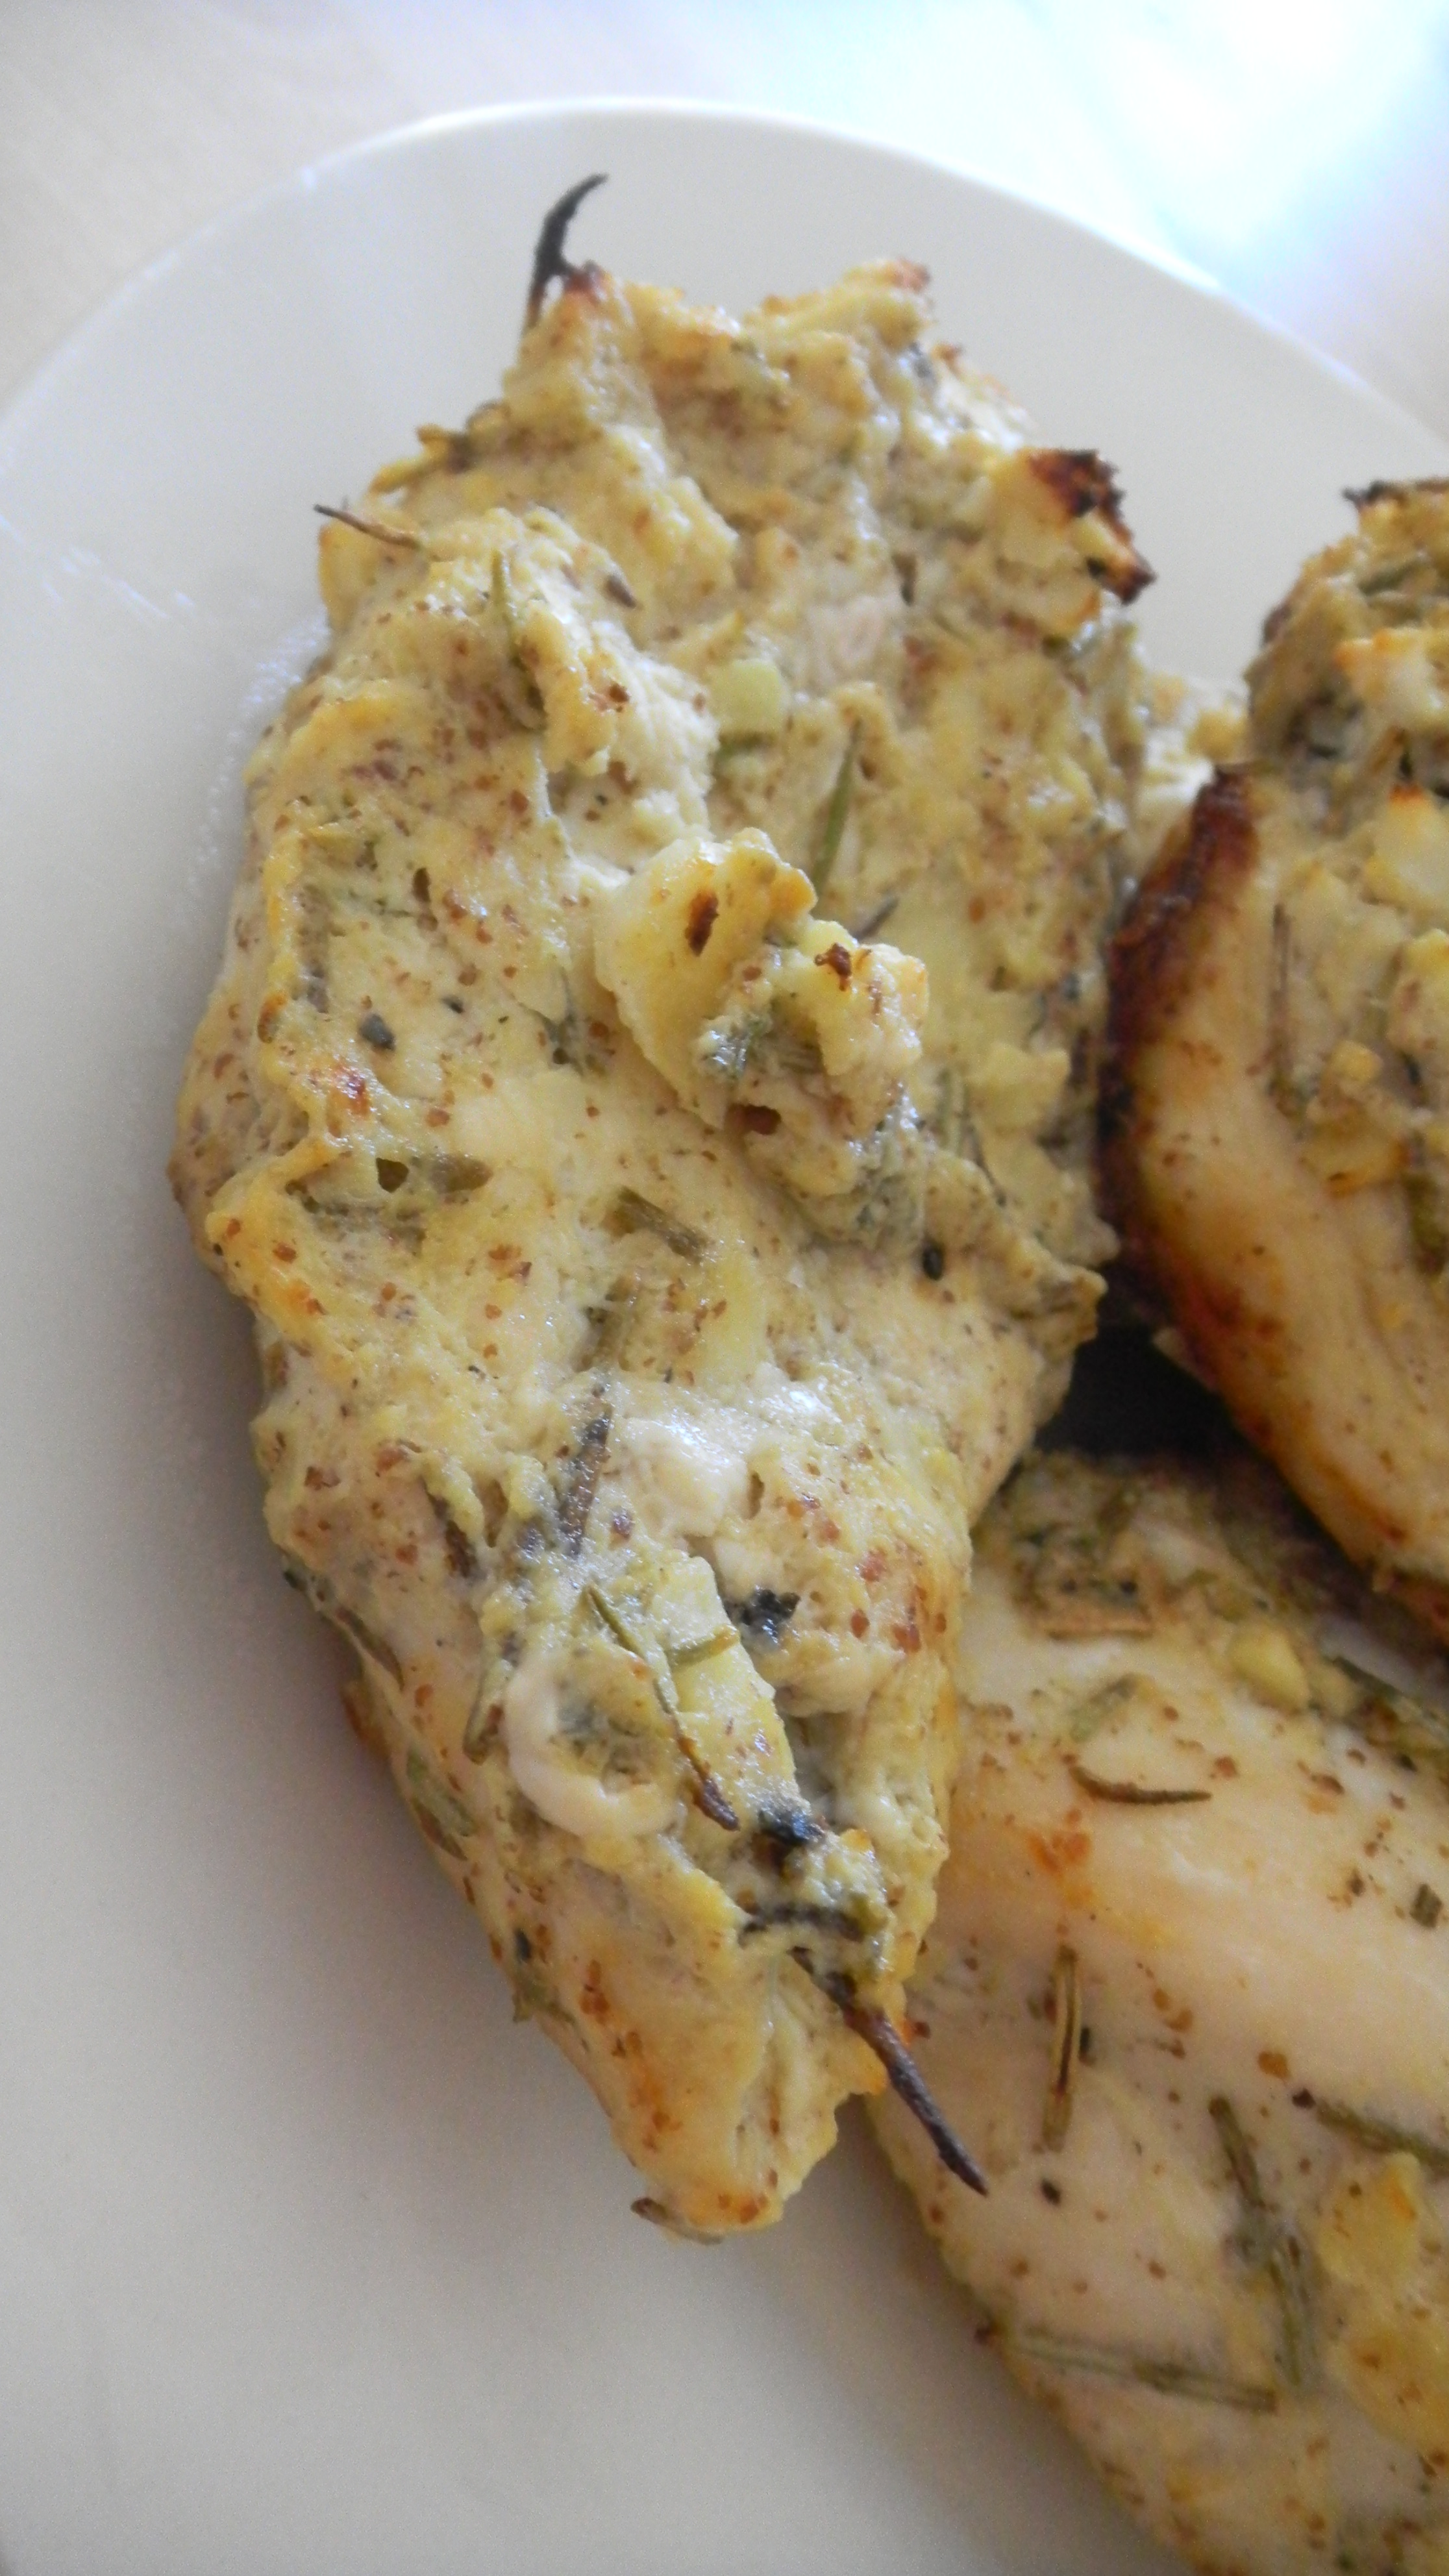 Baked rosemary garlic and ginger chicken breasts | The Clean Palate